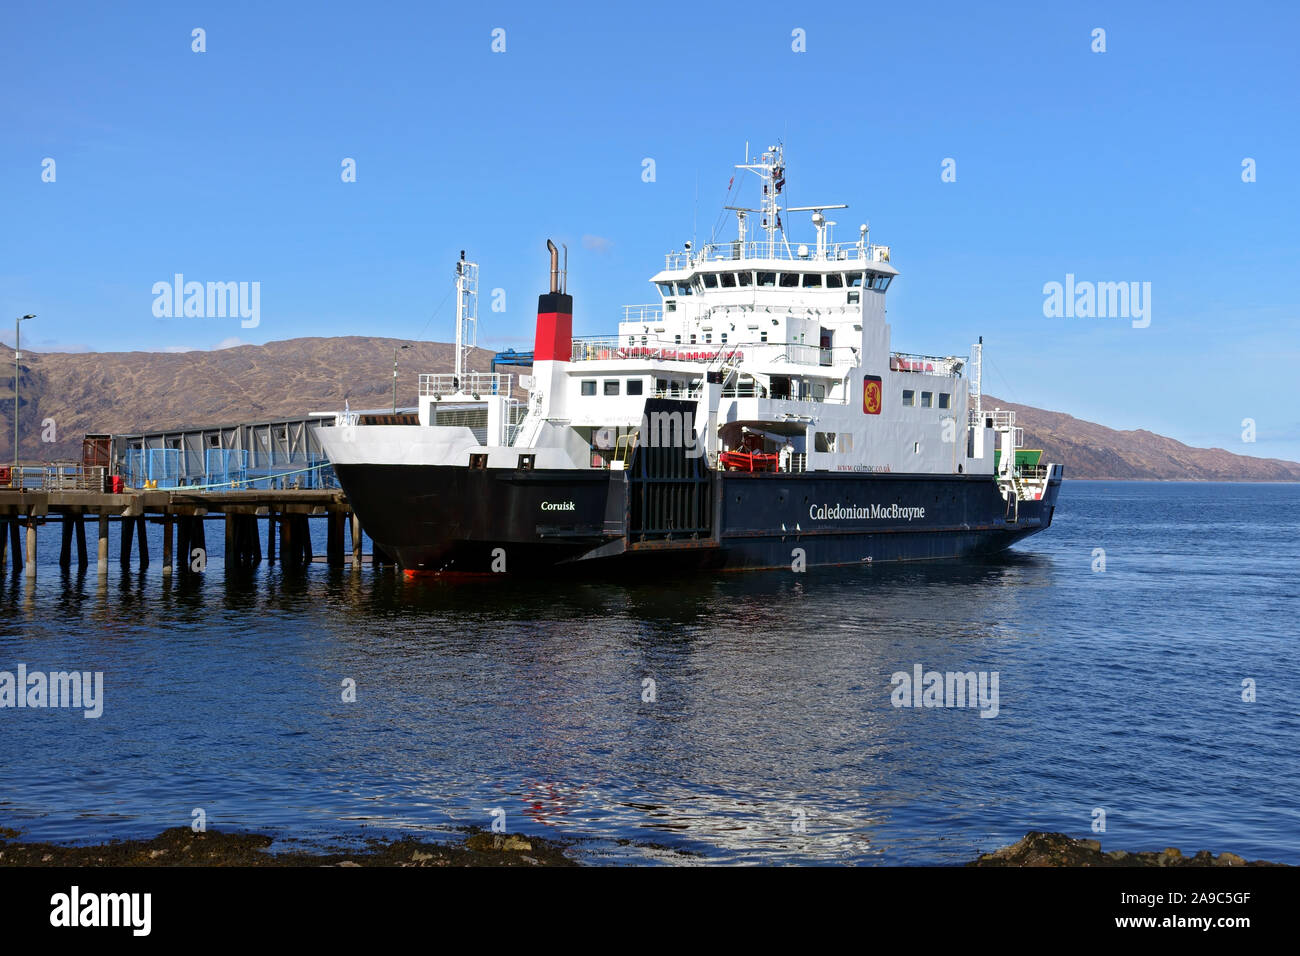 MV Coruisk, Calmac ferry, at Craignure ferry terminal on the Isle of Mull in the Inner Hebrides of Scotland Stock Photo